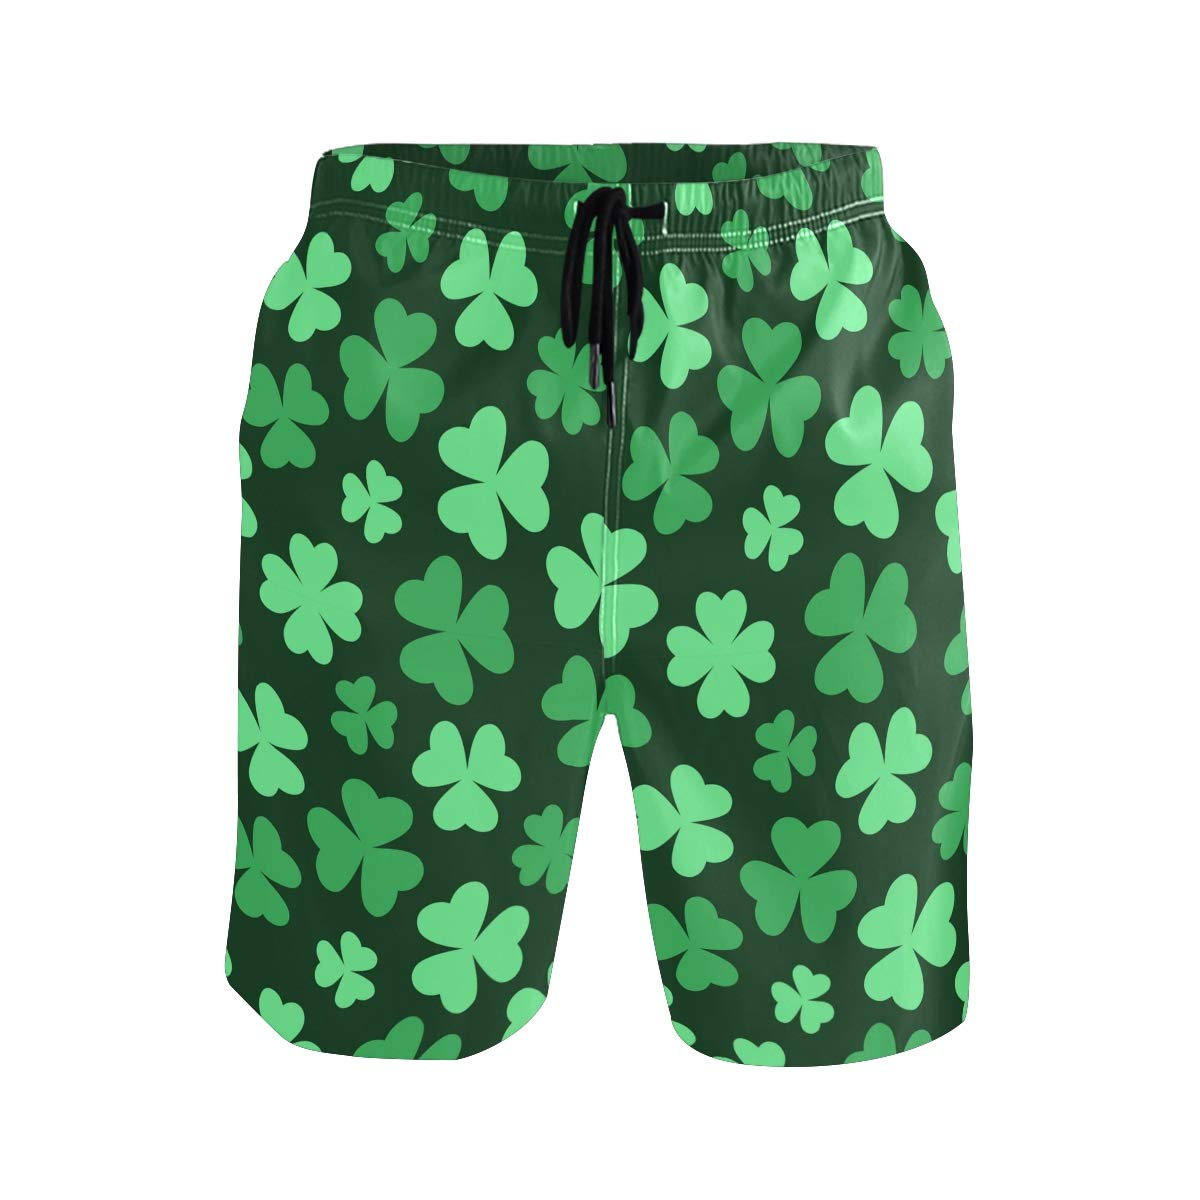 Mens Swim Trunks Quick Dry Bright Green Clover Printed Holiday Beach Board Shorts with Mesh Lining